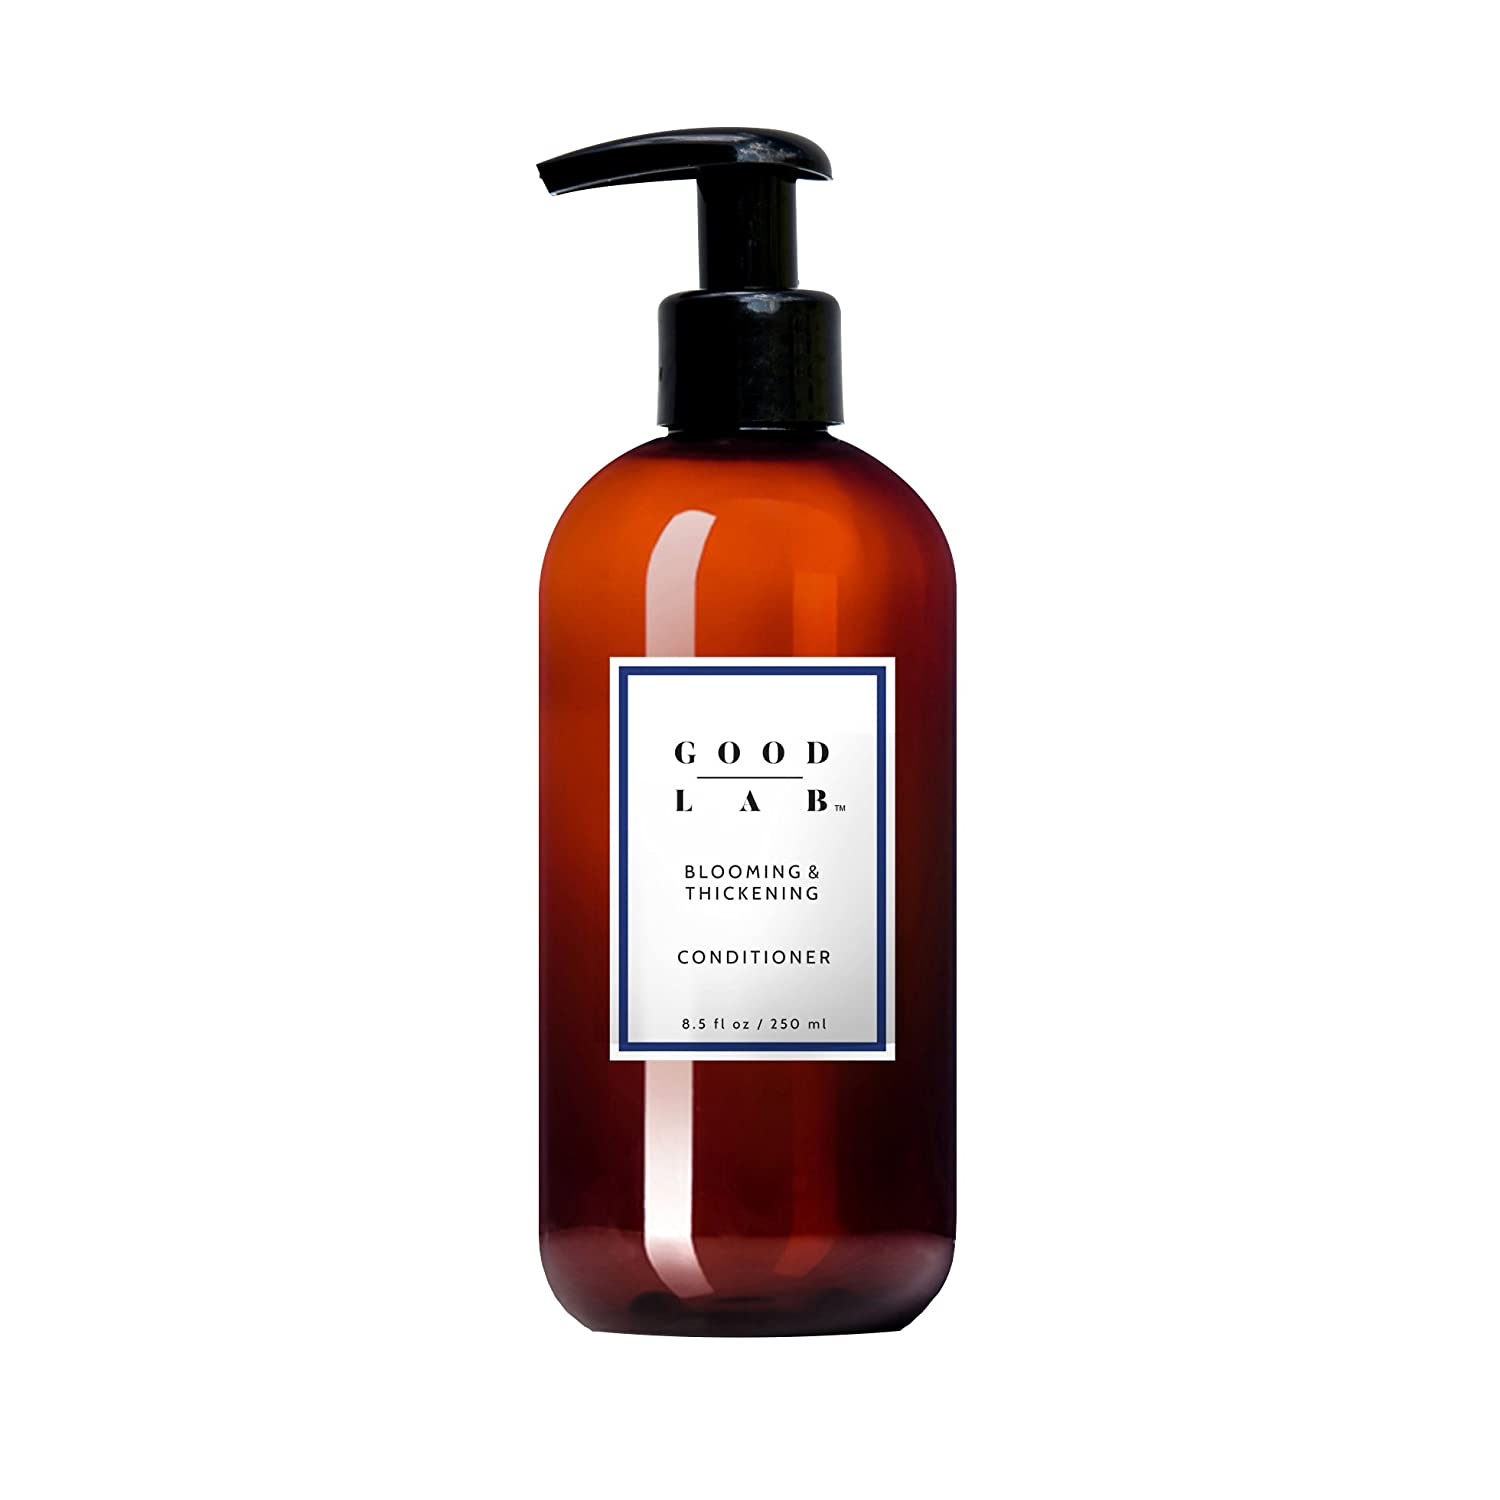 Good Lab Blooming & Thickening Conditioner for Hair Loss, Hair Growth & Thinning Hair. Packed w/DHT Blockers & Antioxidants. Sulfate-free Conditioner. All Hair Types. Amalia